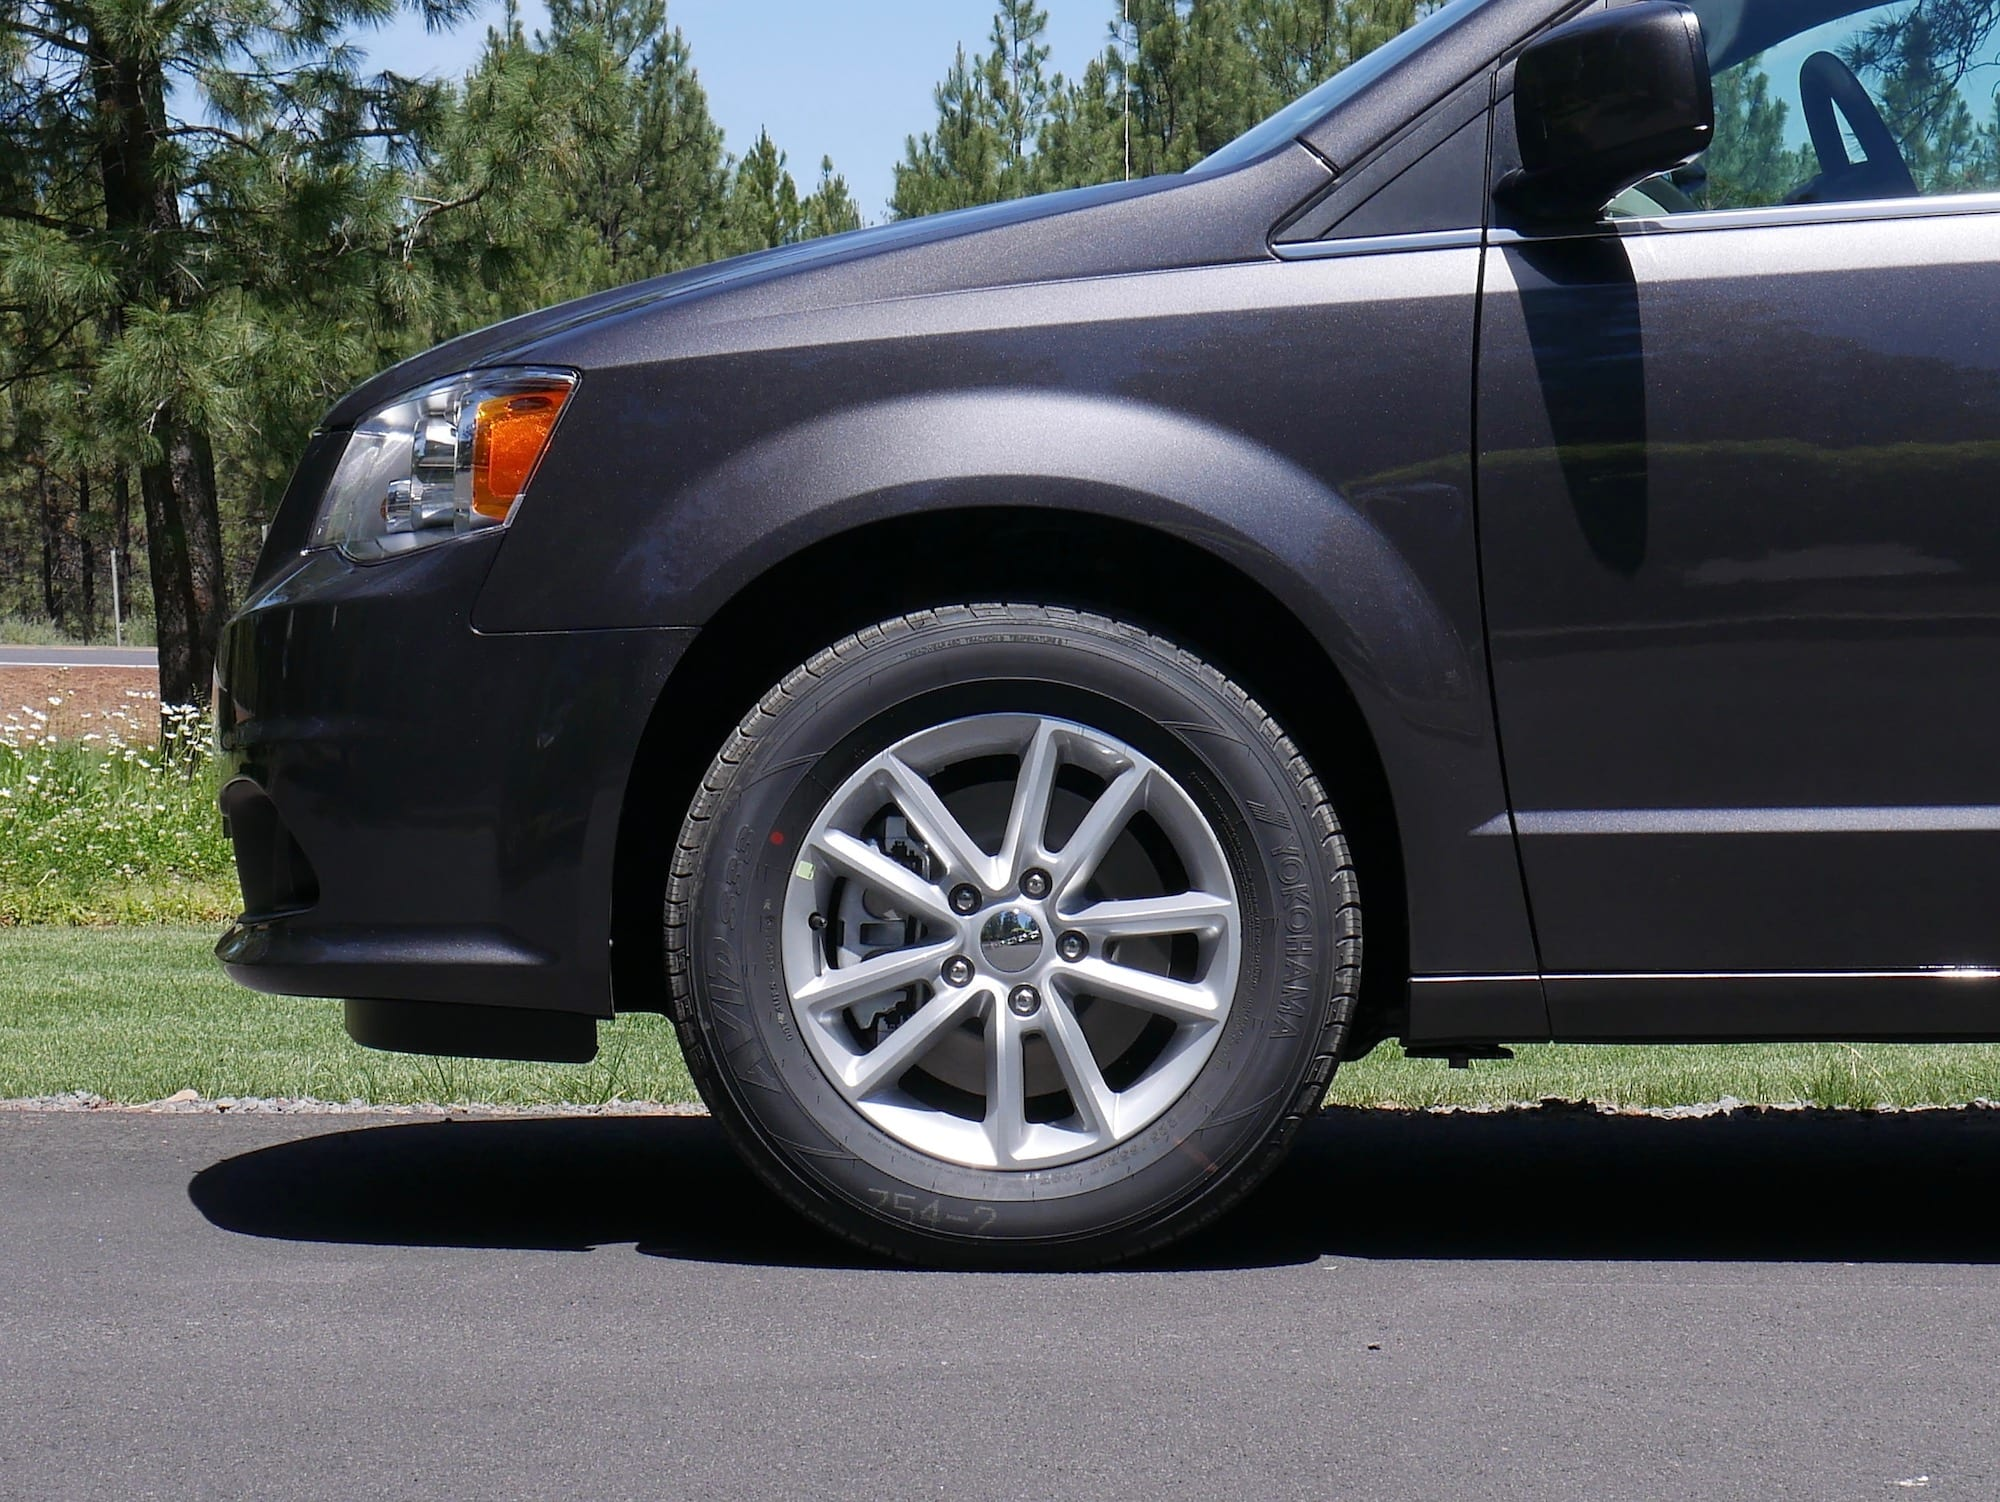 2019 Dodge Grand Caravan front fender and wheel